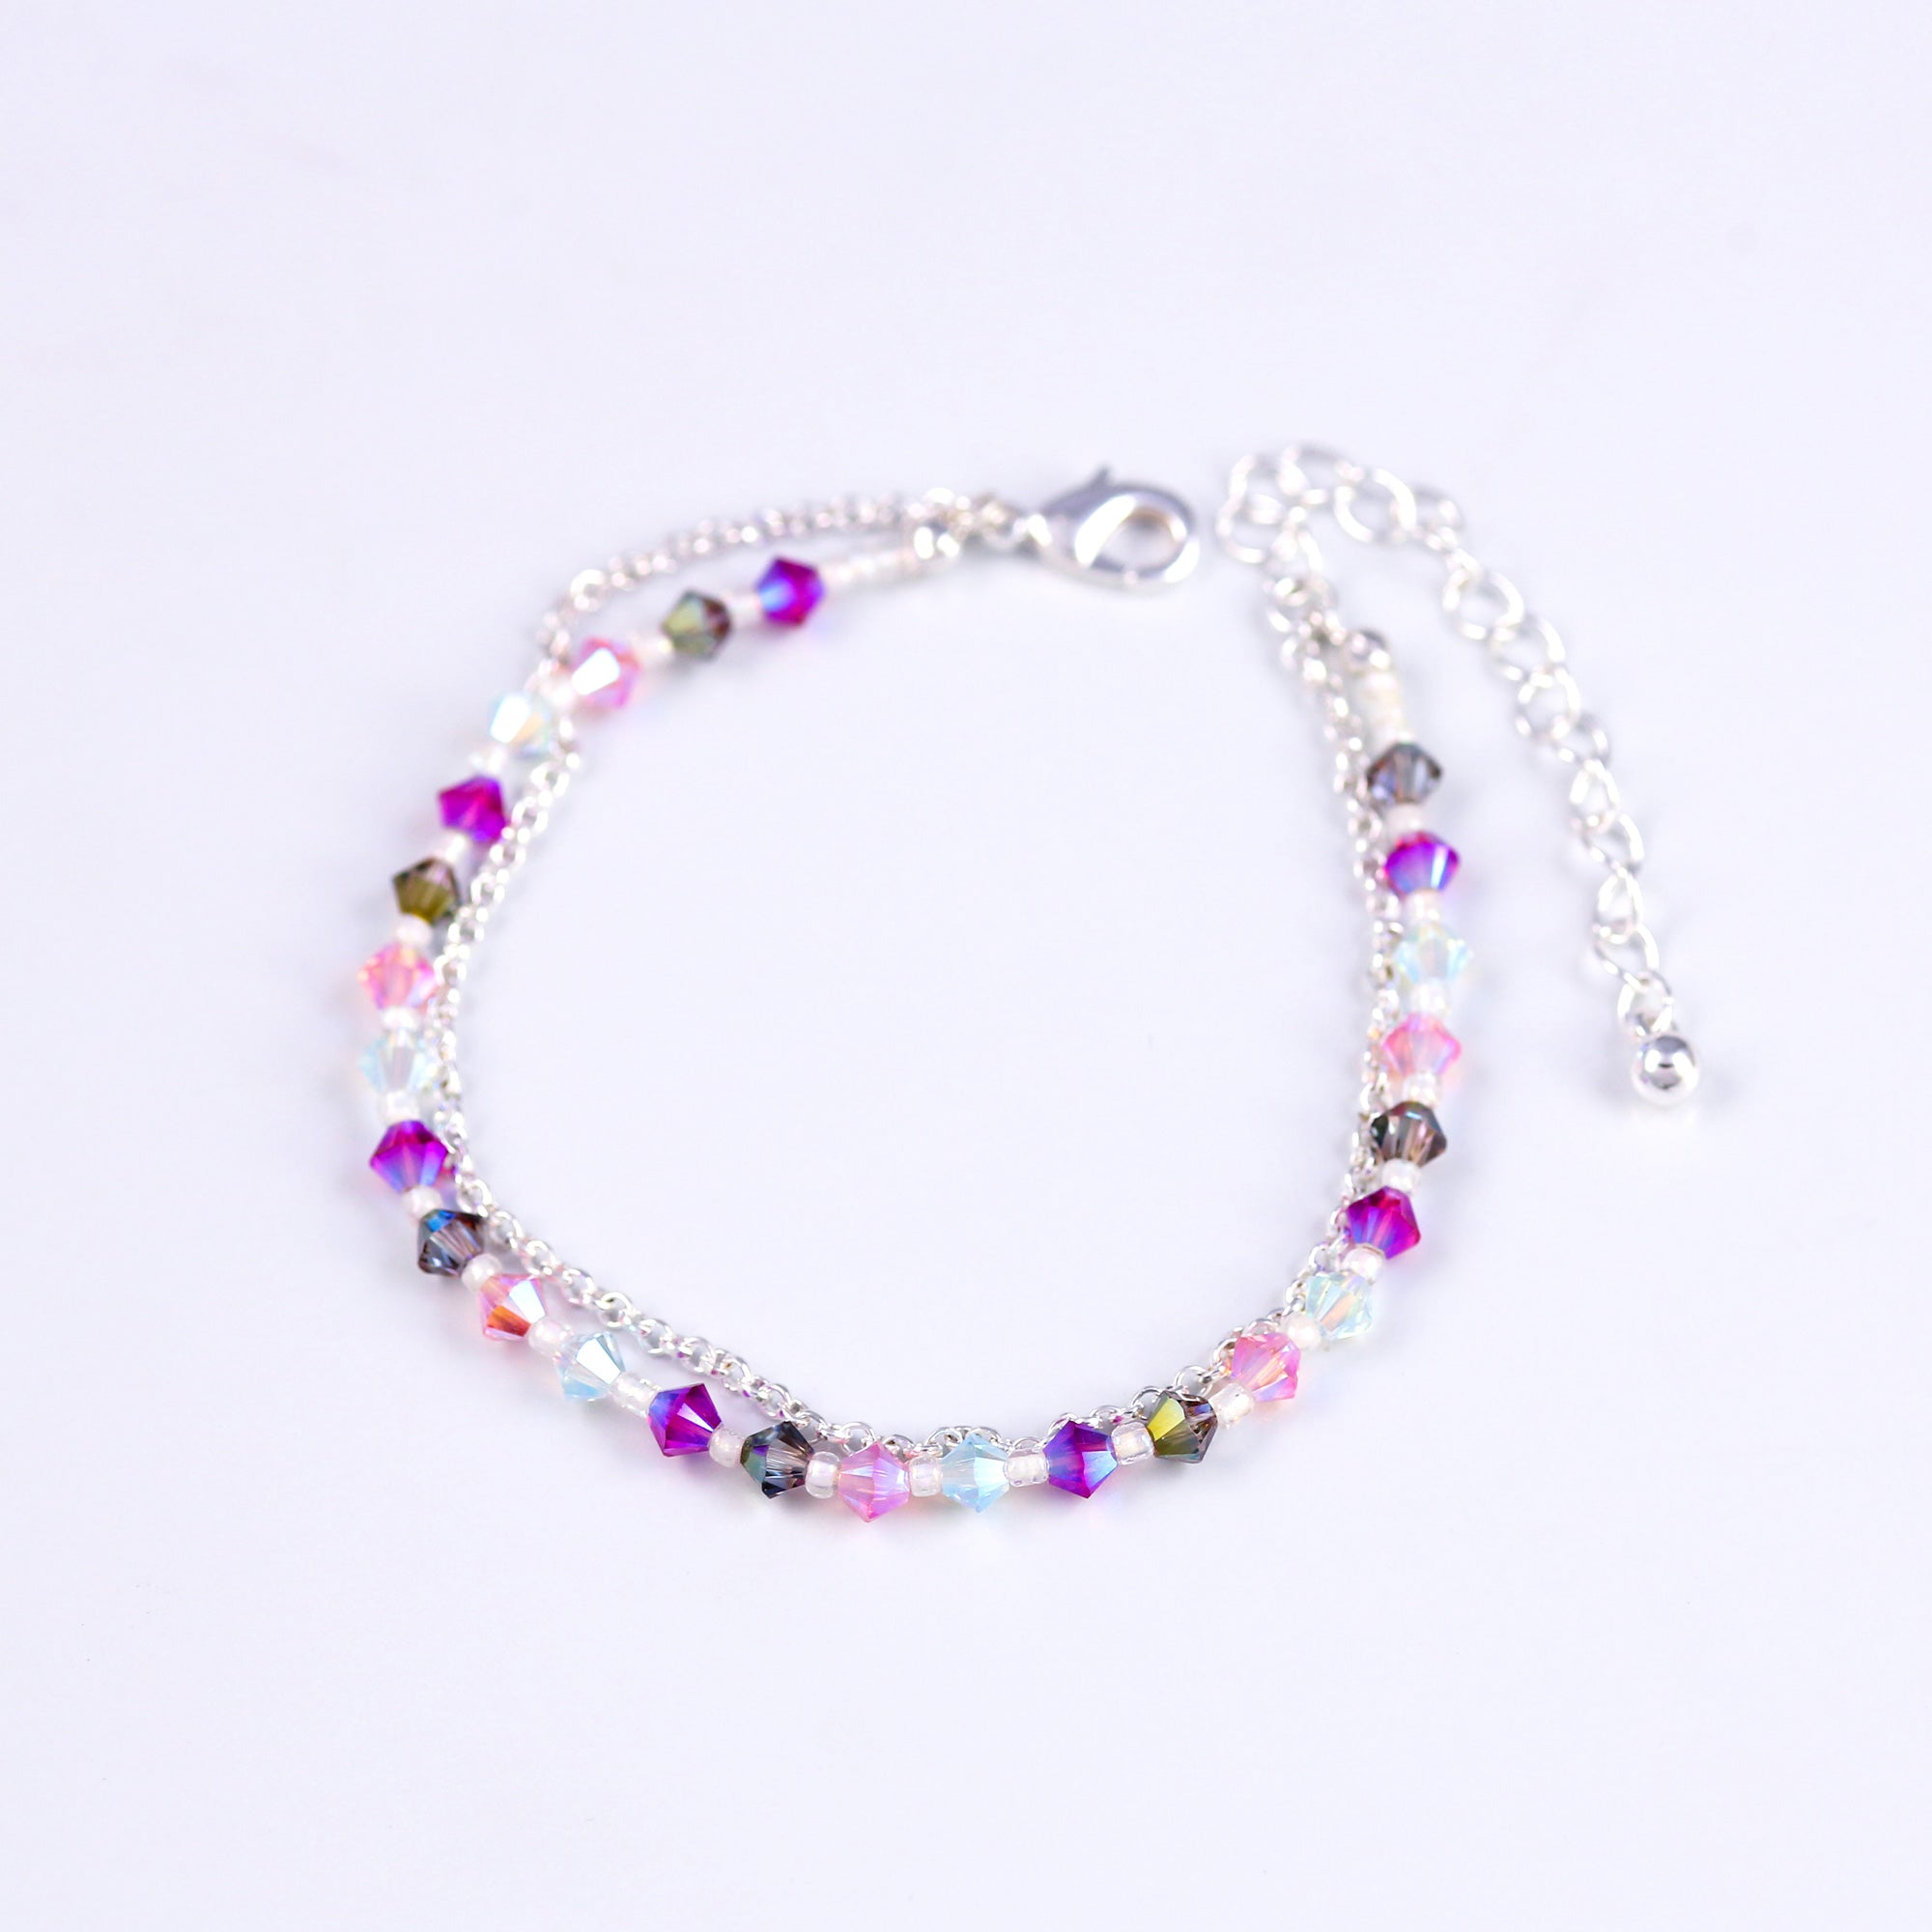 Silver Bead Bracelet in Purples